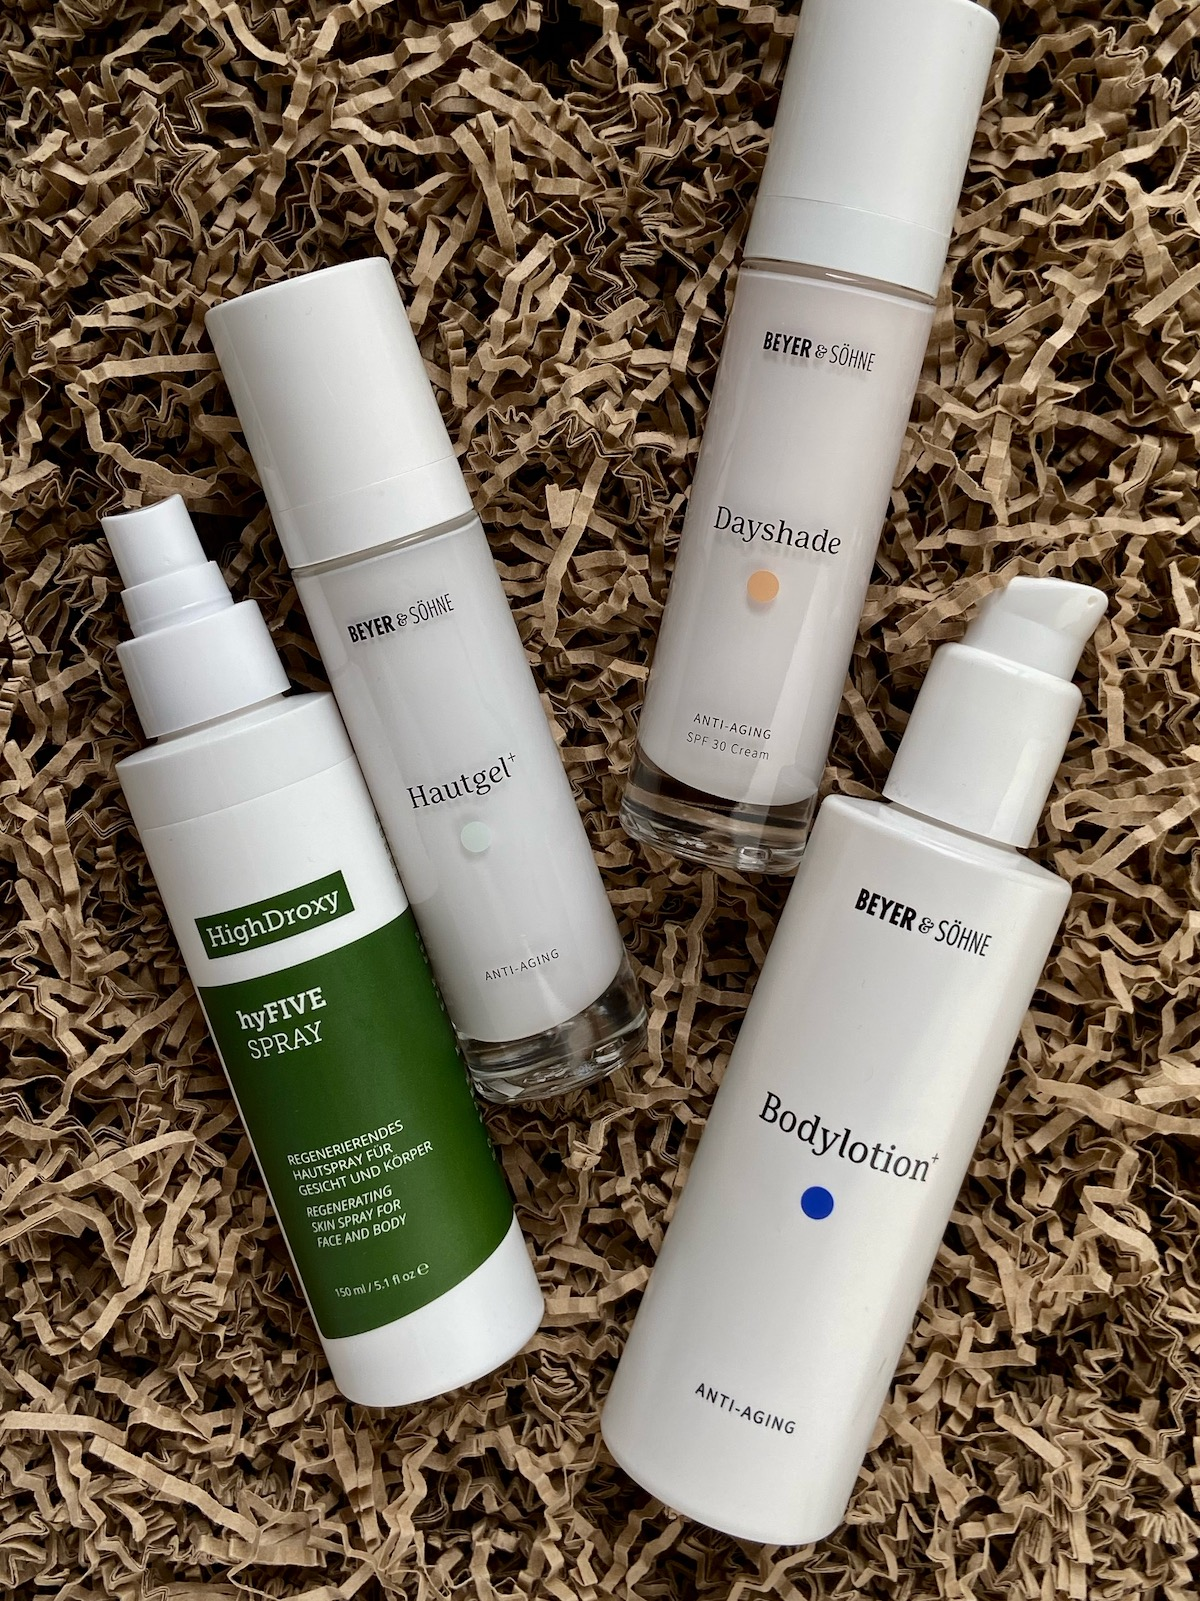 Winterpflege Hals Dekolleté HighDroxy hyFIVE Spray Beyer & Söhne Hautgel+ Bodylotion+ Dayshade Cream